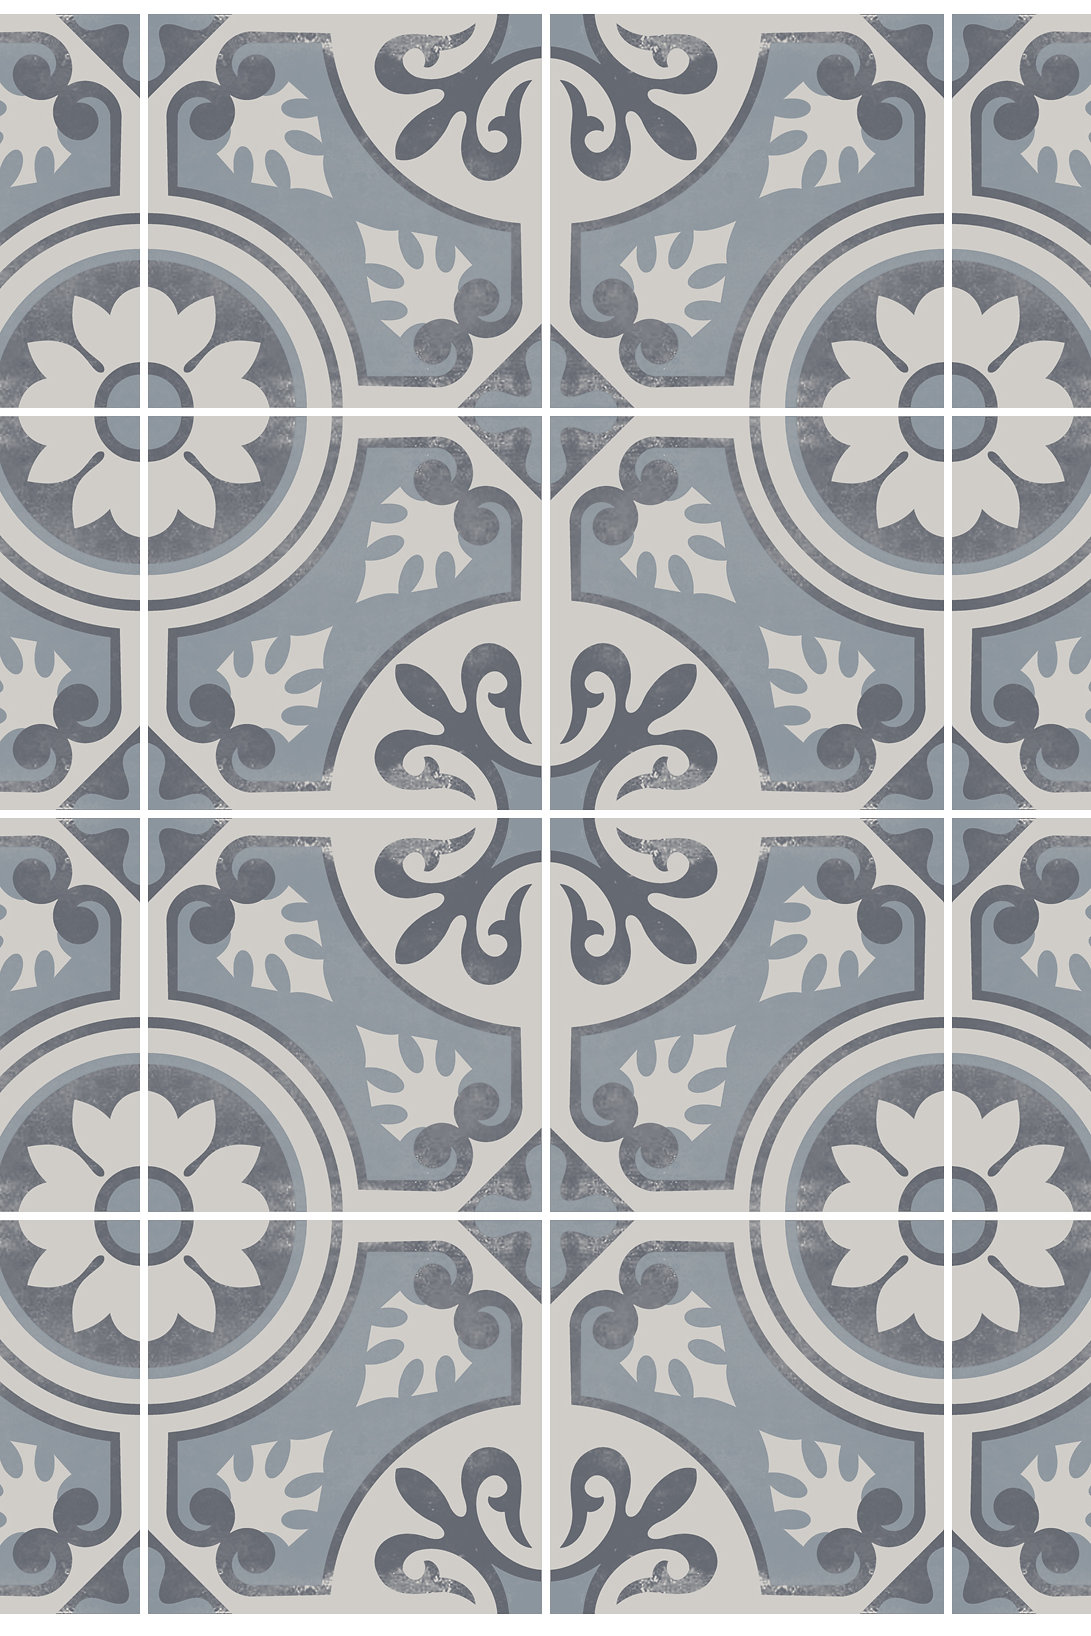 Old floor tile choice image tile flooring design ideas tile decals quadrostyle vinyl floor tile sticker messina carbon quadrostyle offers you a new way to dailygadgetfo Images